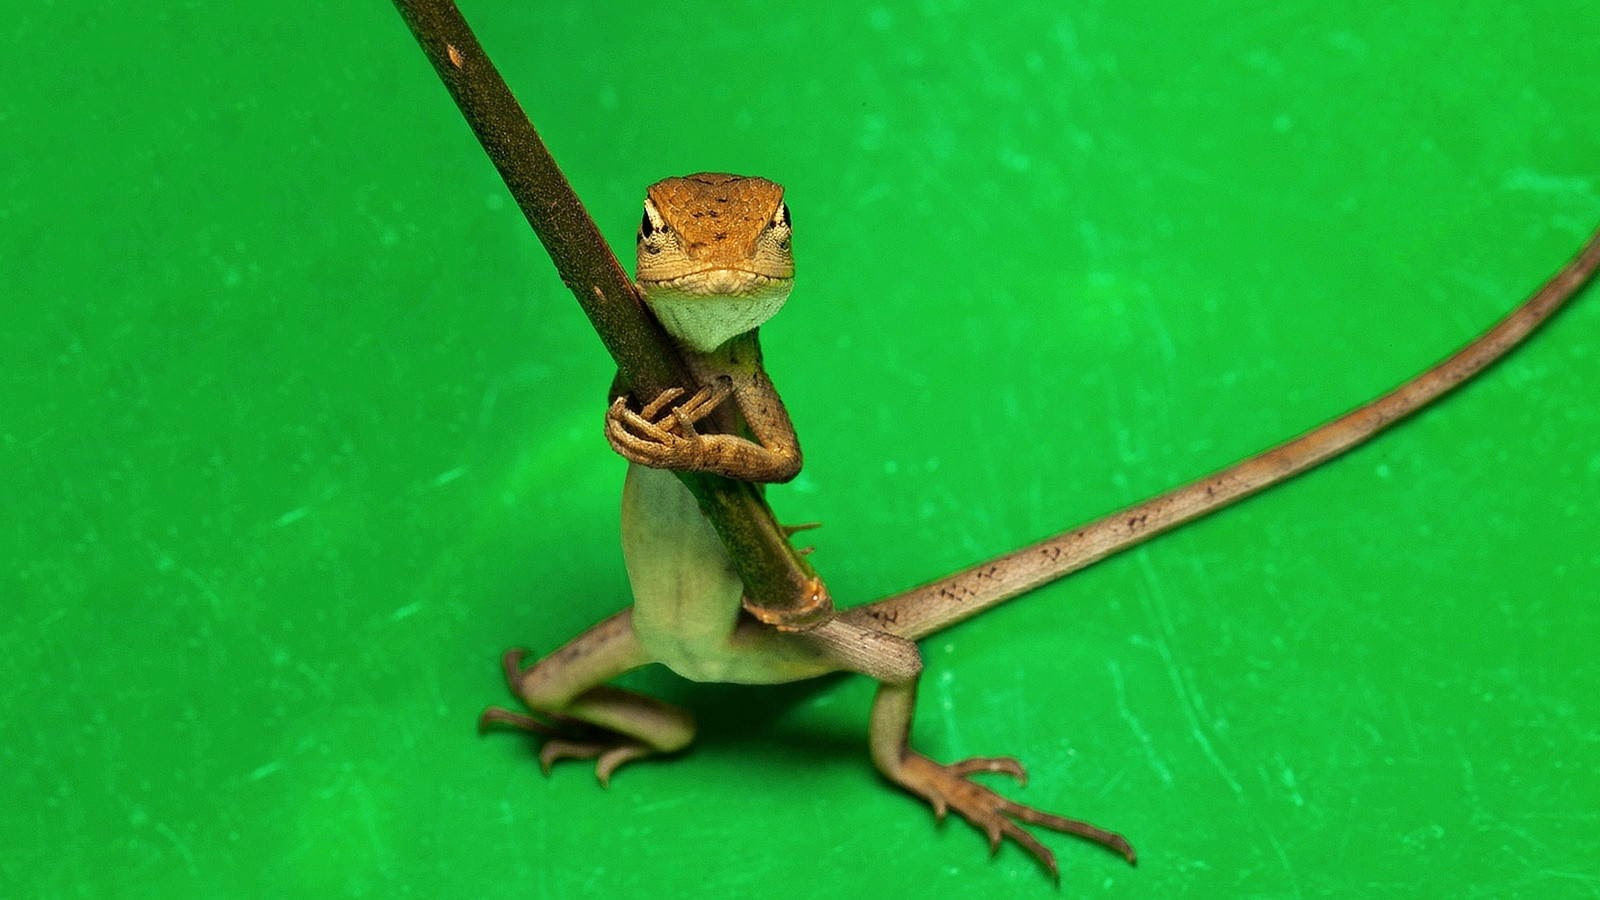 Funny animals of the week - 21 March 2014 (40 pics), funny animal pictures, tiny lizard hols a stick